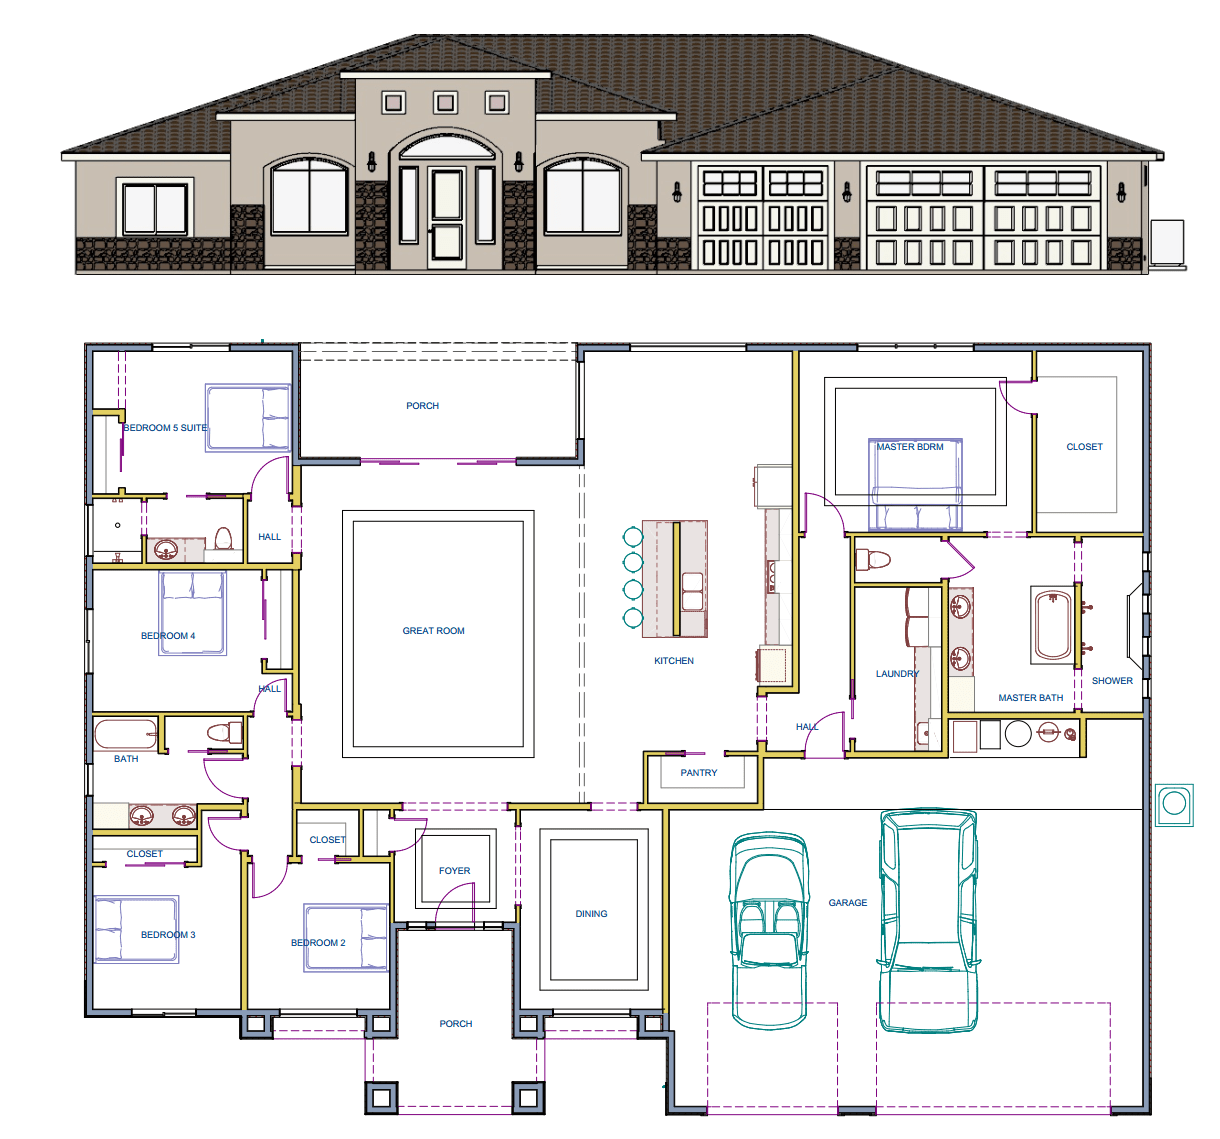 Spec Sheet of home during construction in Hereford Arizona